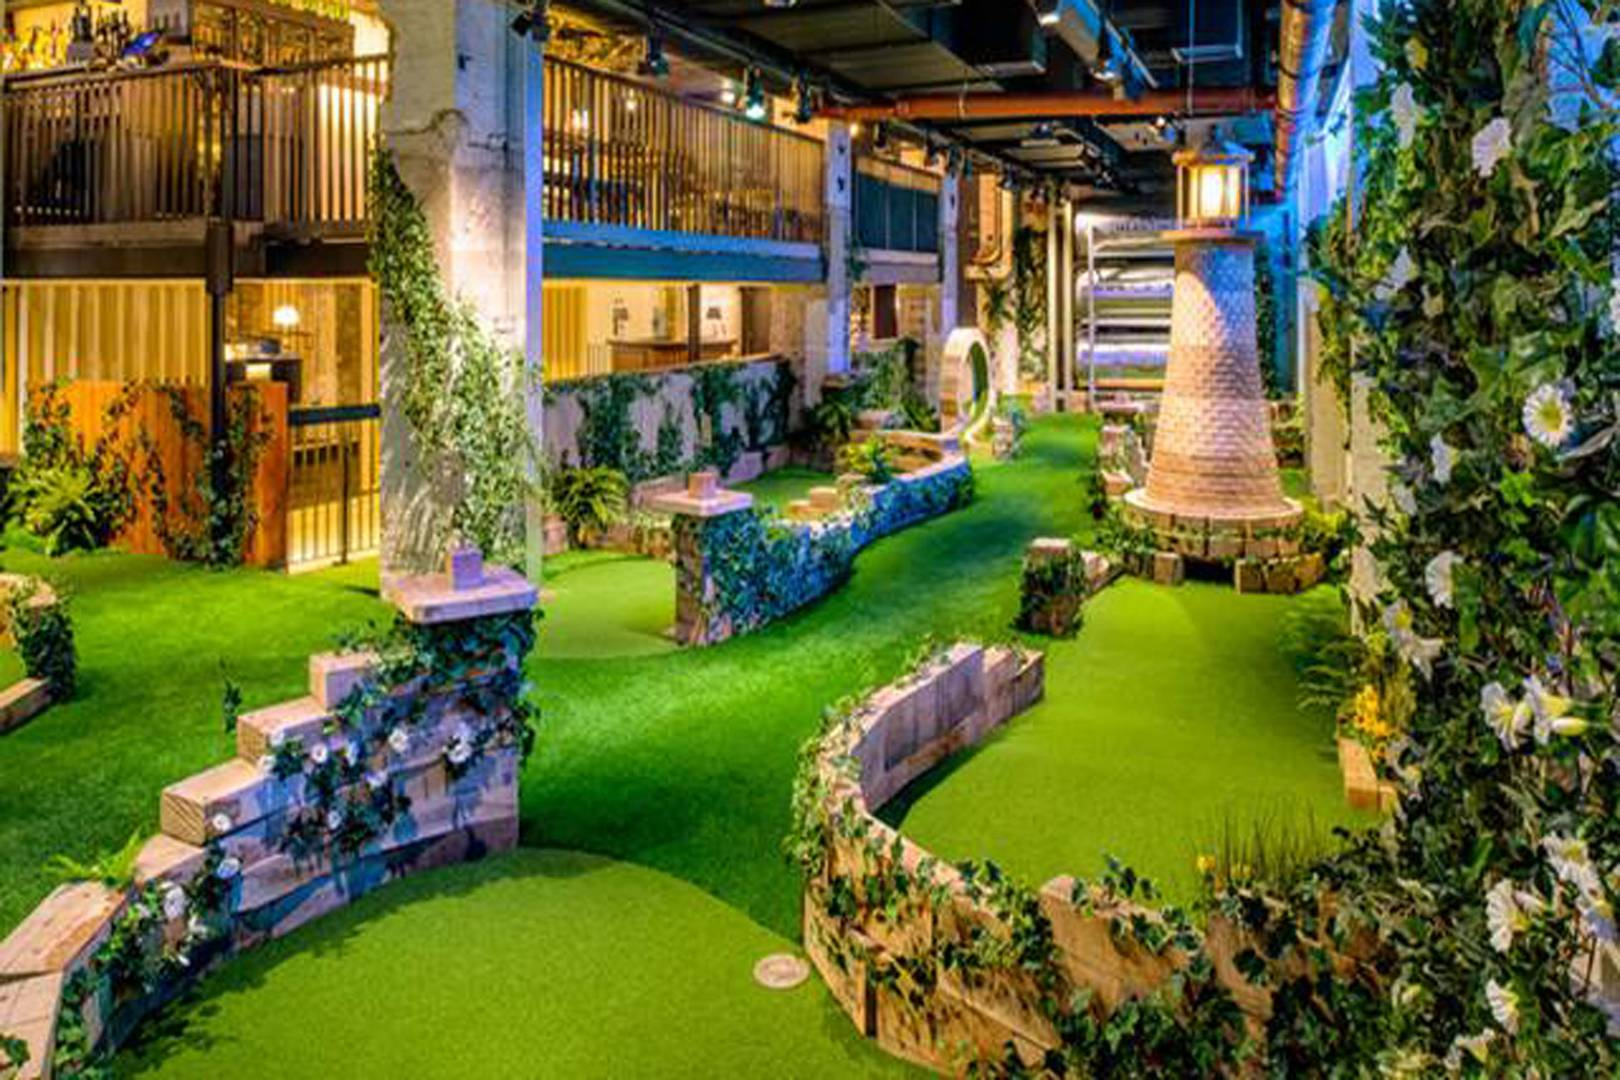 Ping Pong Board Game Beer And Crazy Golf Bars British Gq Huzaah You Now Have A Backyard With Super Cool Party Vibes